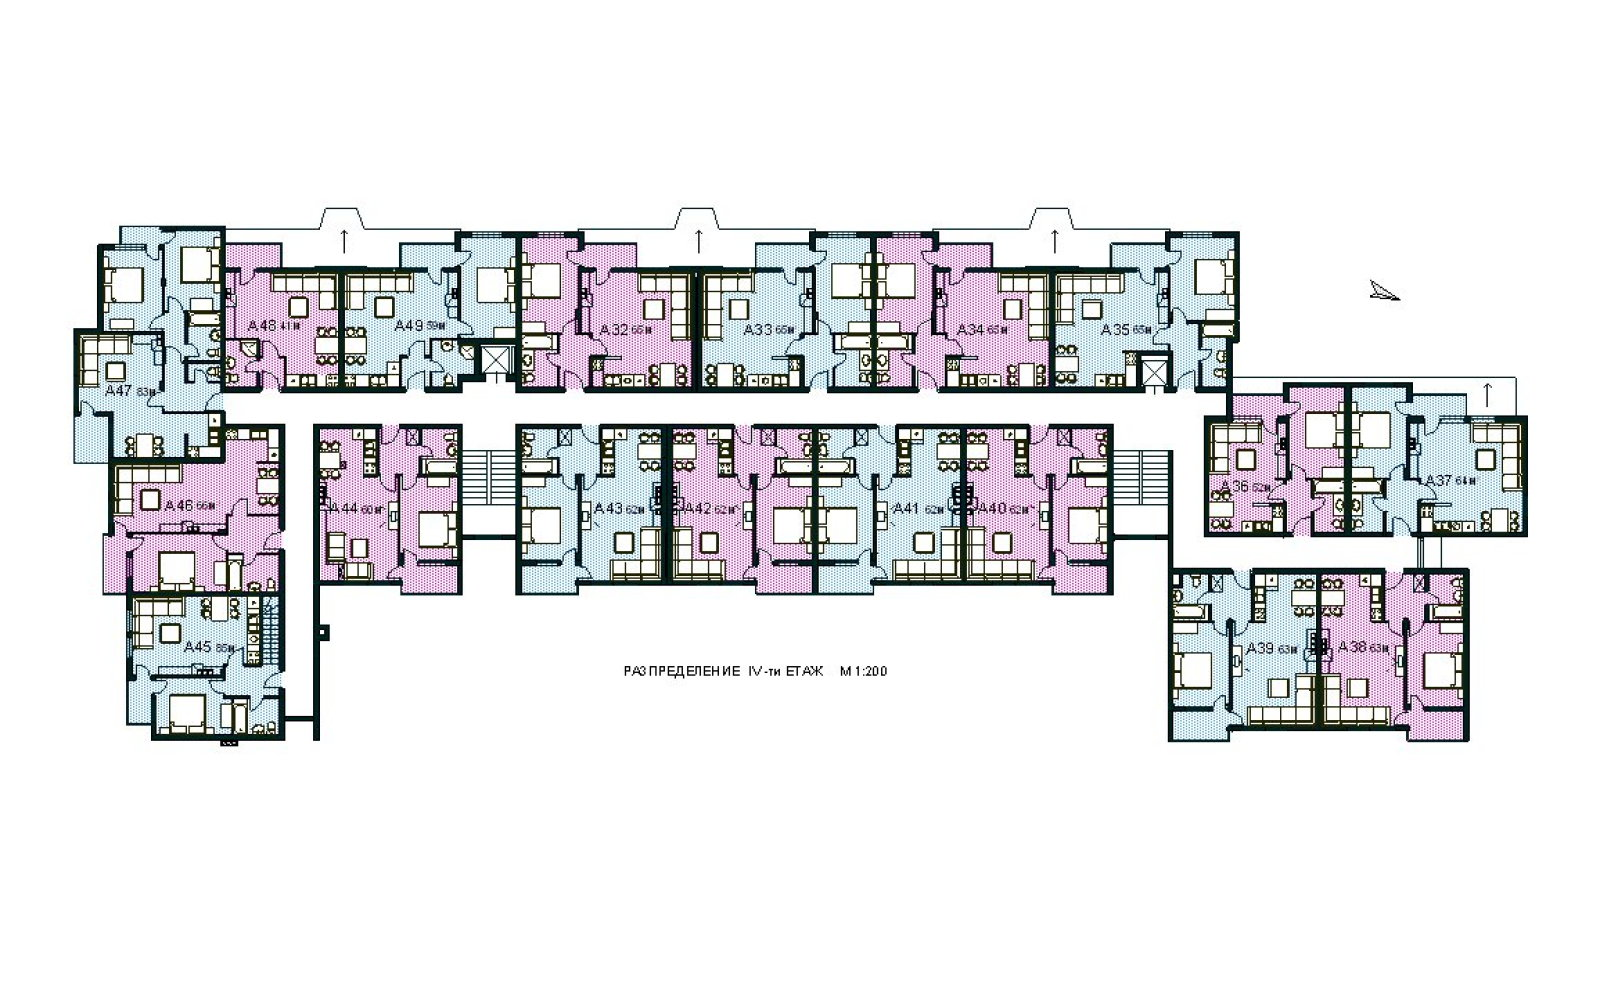 Apartment complex building plans unique house plans for Apartment complex building plans